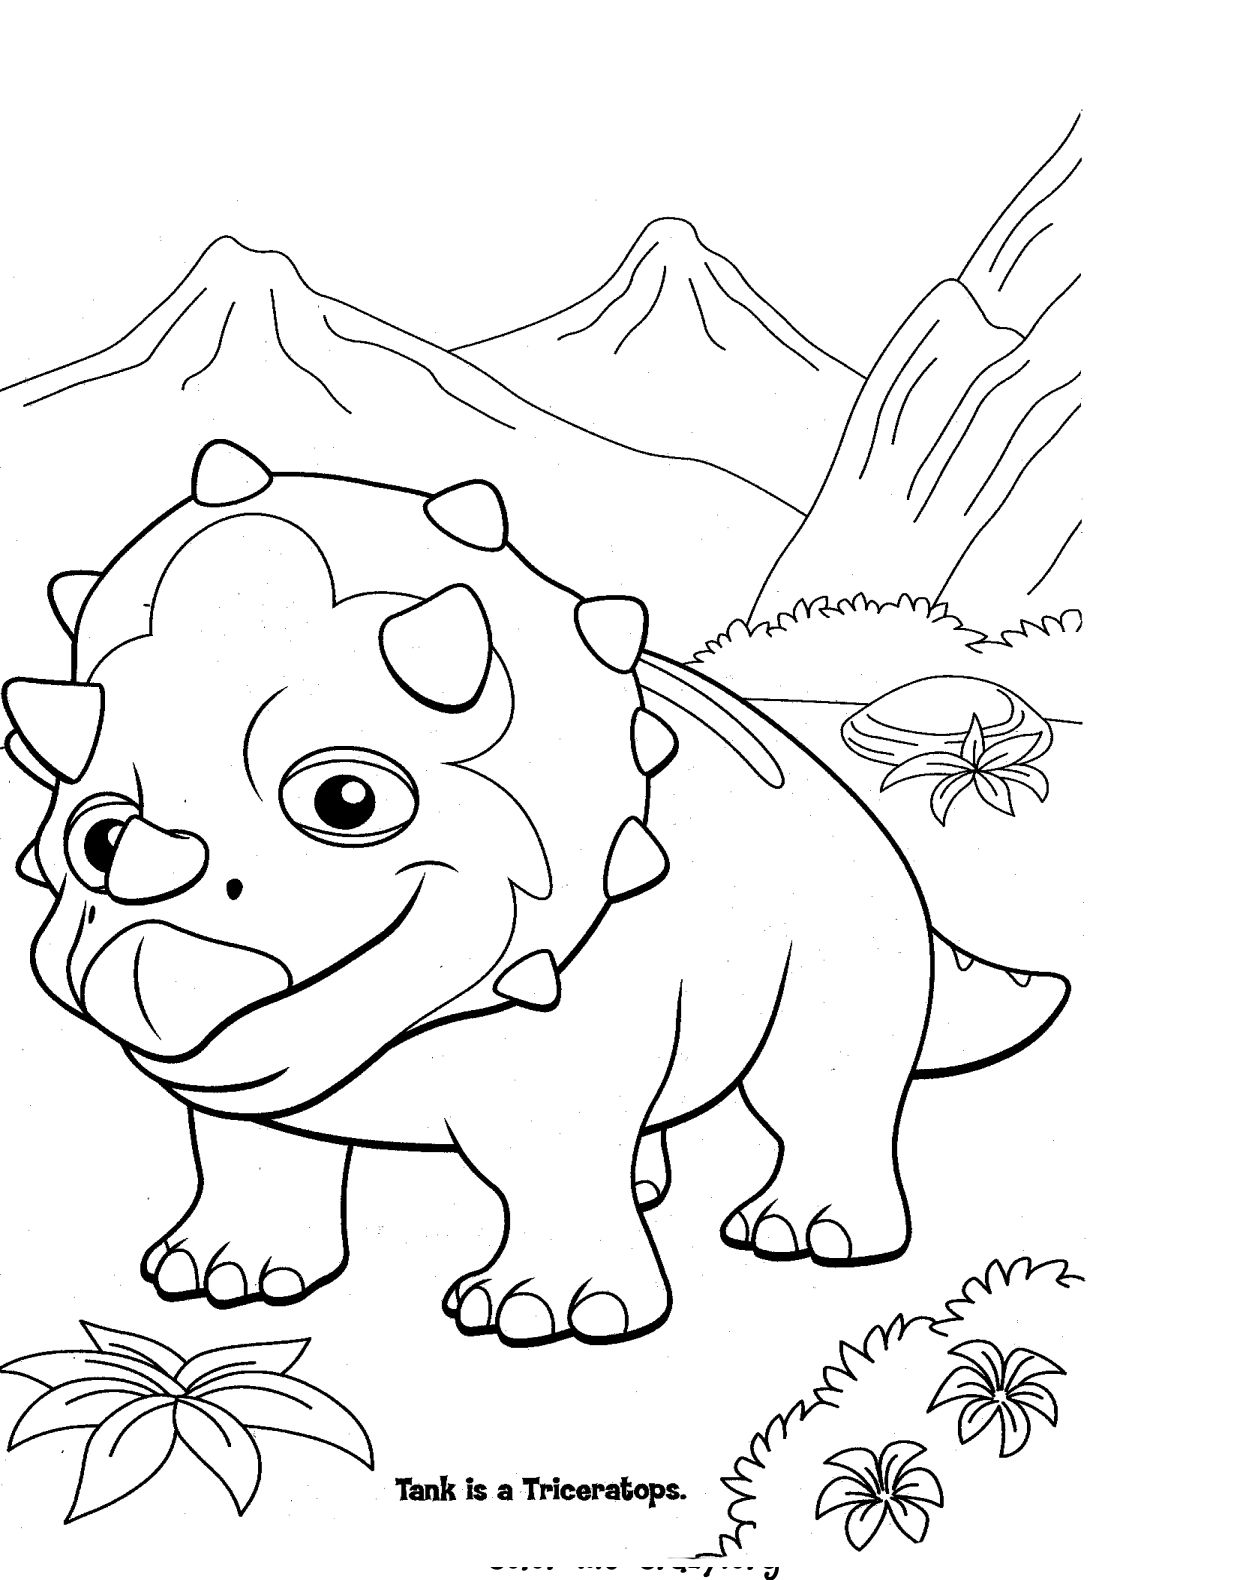 print dinosaur coloring pages free printable dinosaur coloring pages for kids dinosaur pages print coloring 1 1